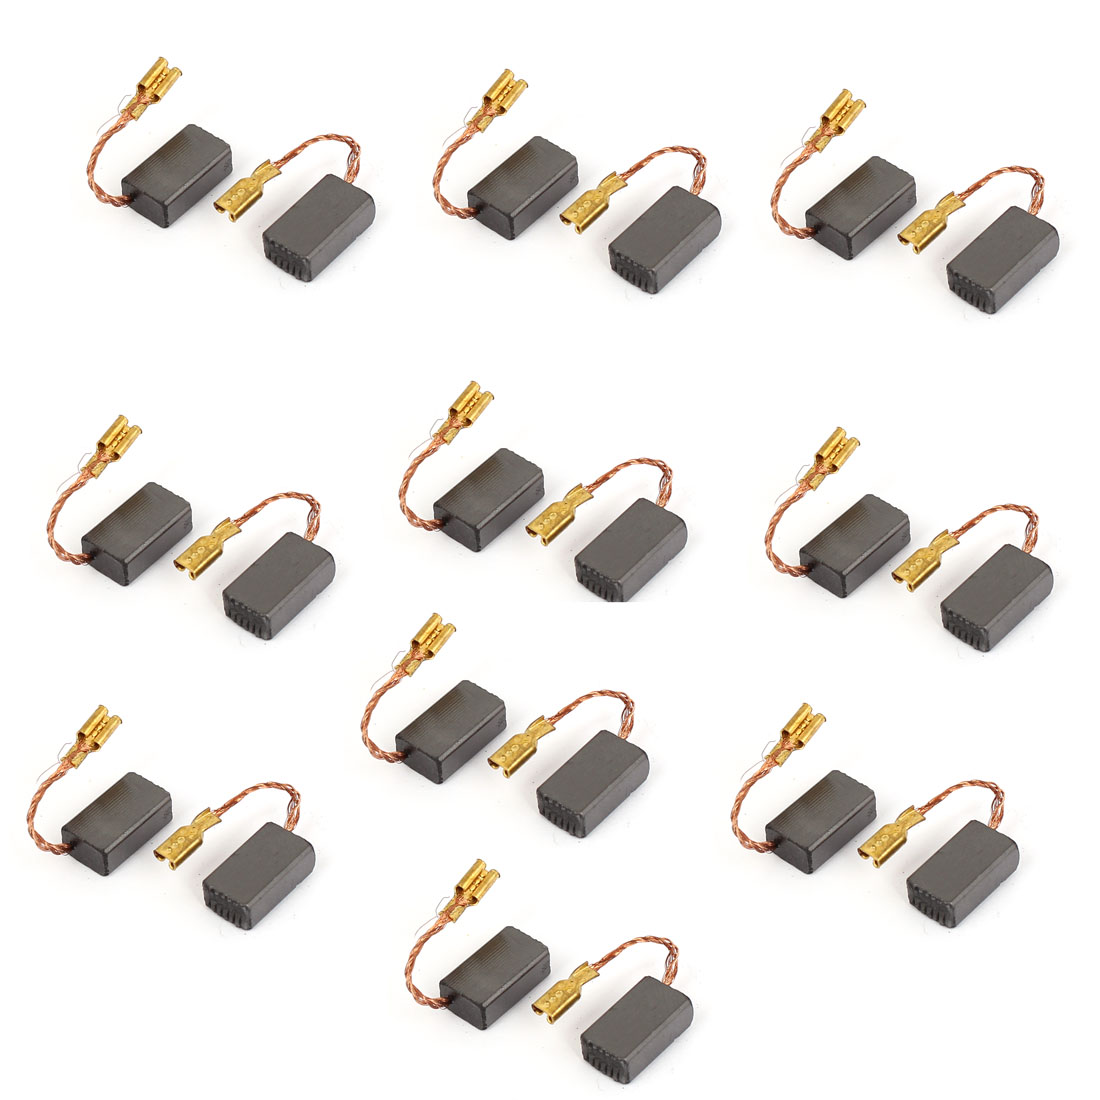 14mm x 8mm x 5mm Motor Carbon Brushes 20 Pcs for Generic Electric Motor